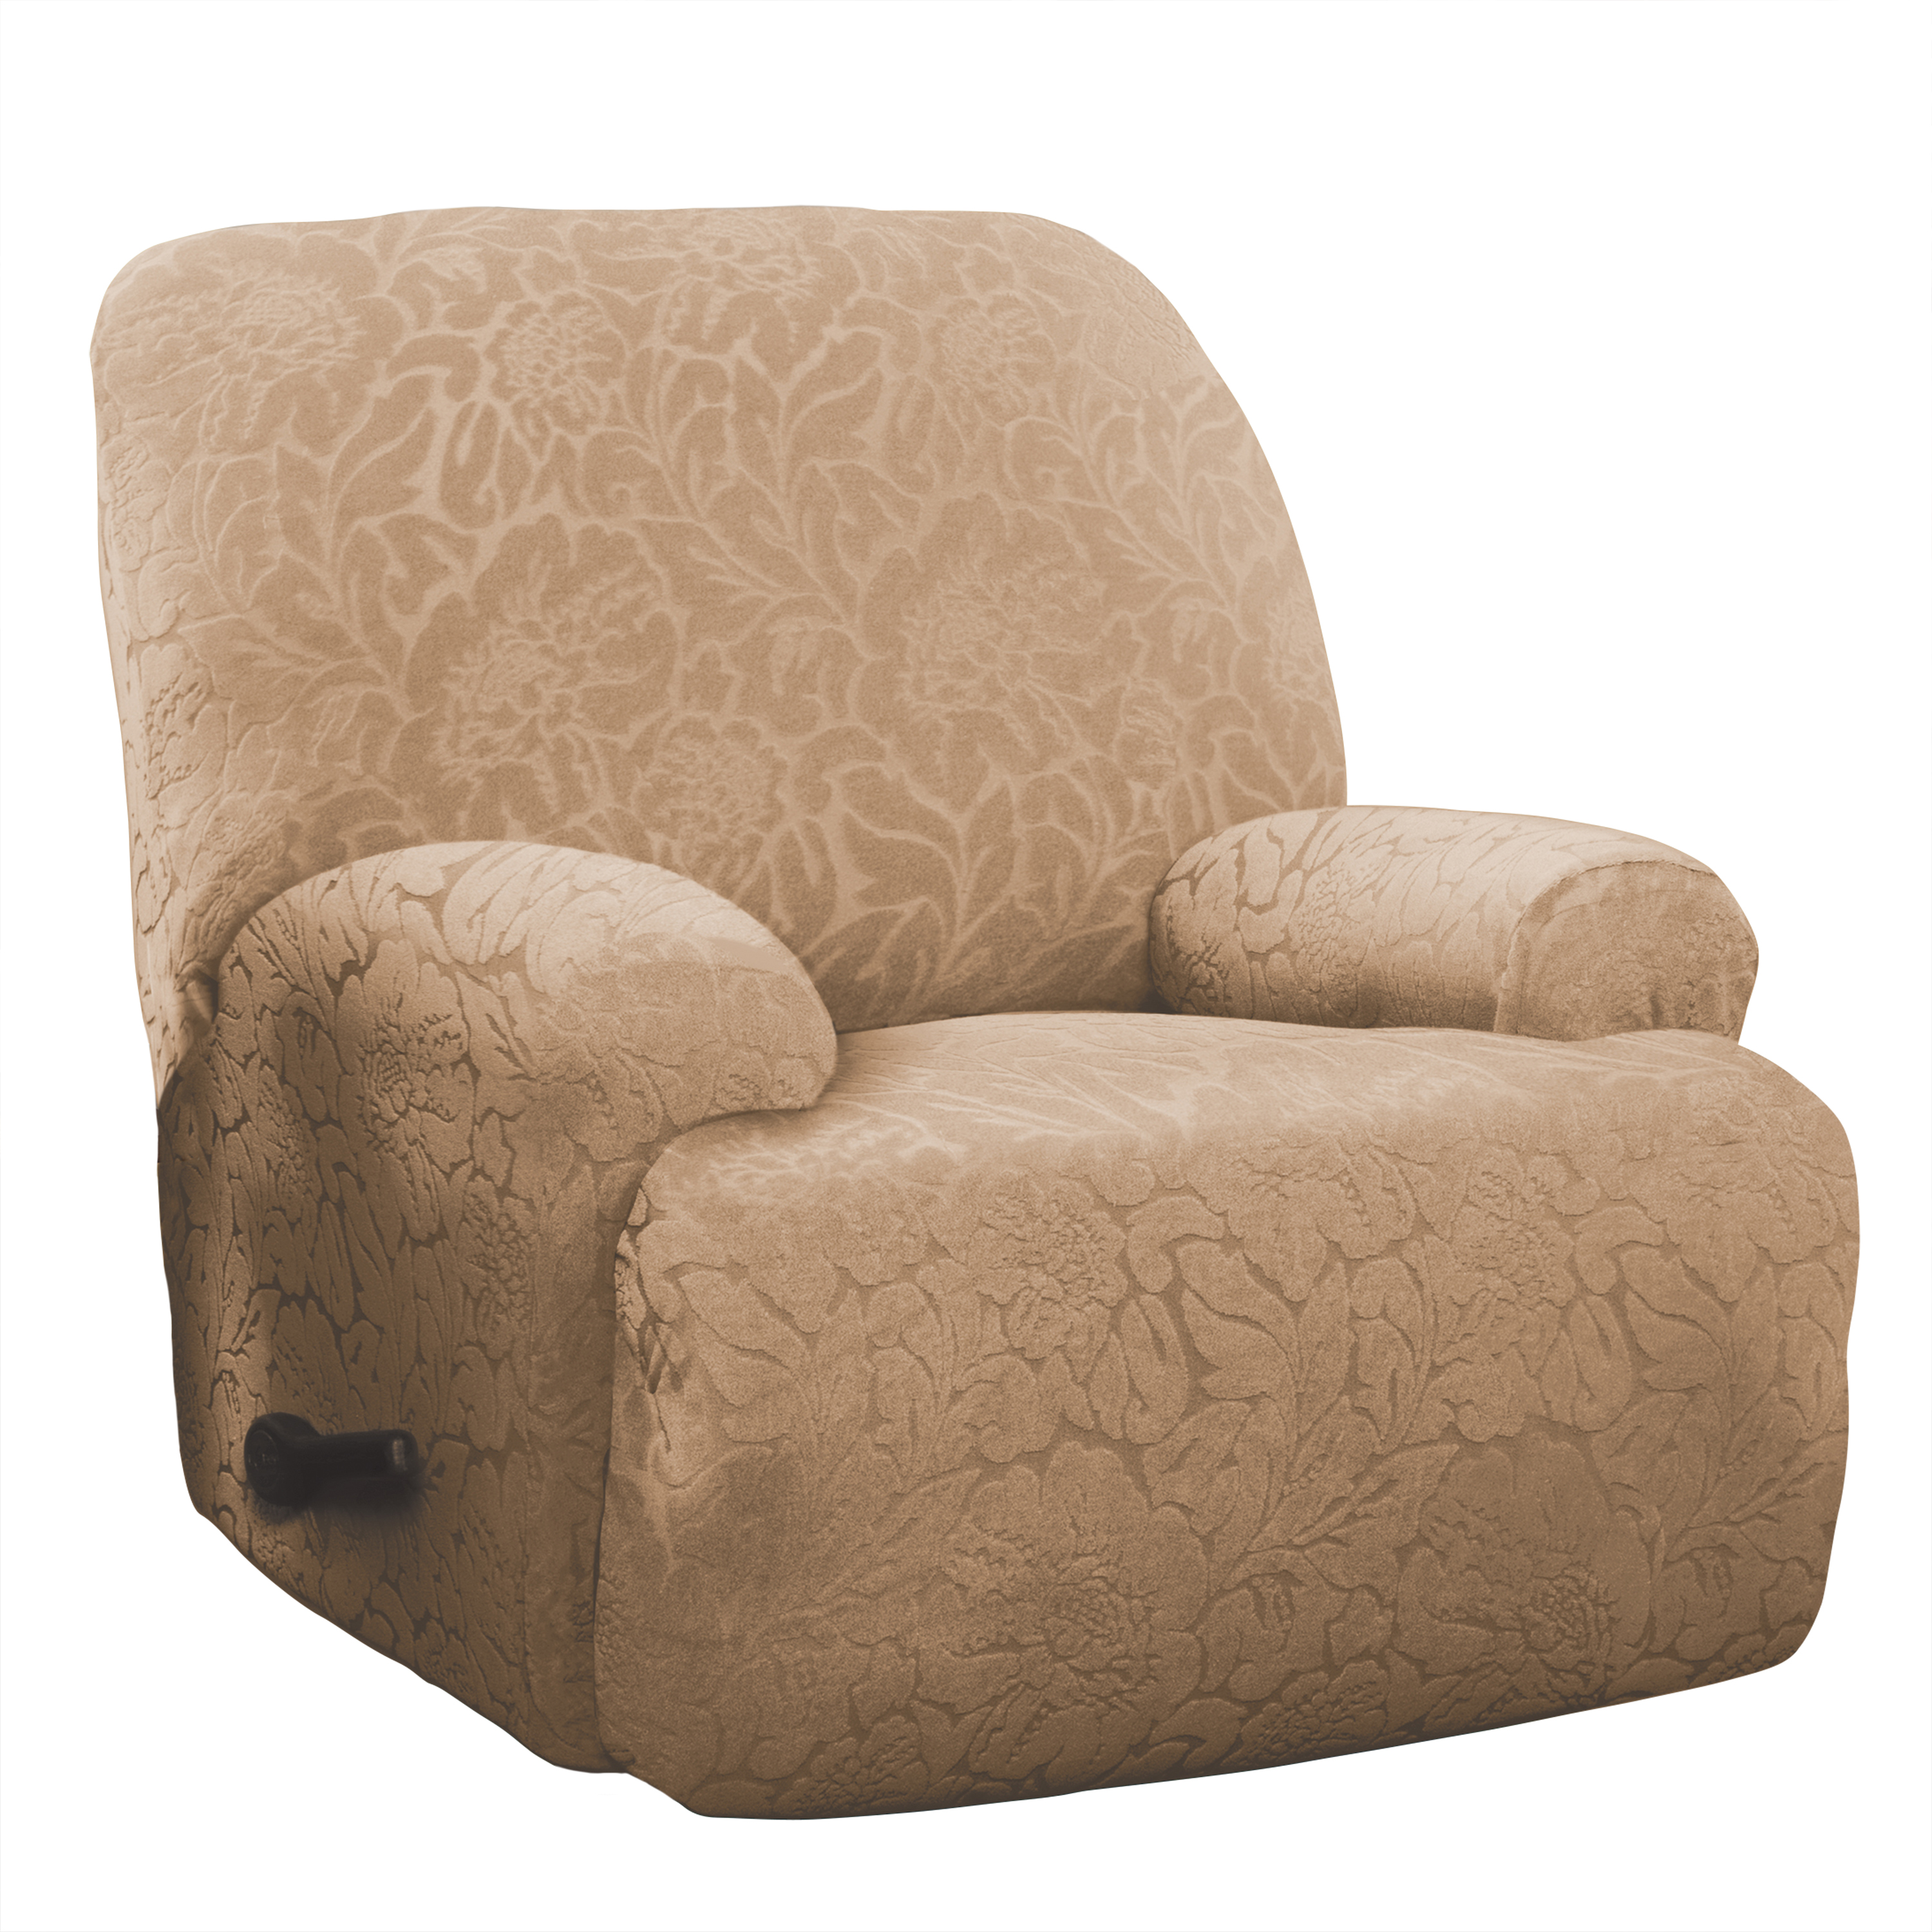 Stretch Sensations Stretch Floral Jumbo Recliner Slipcover